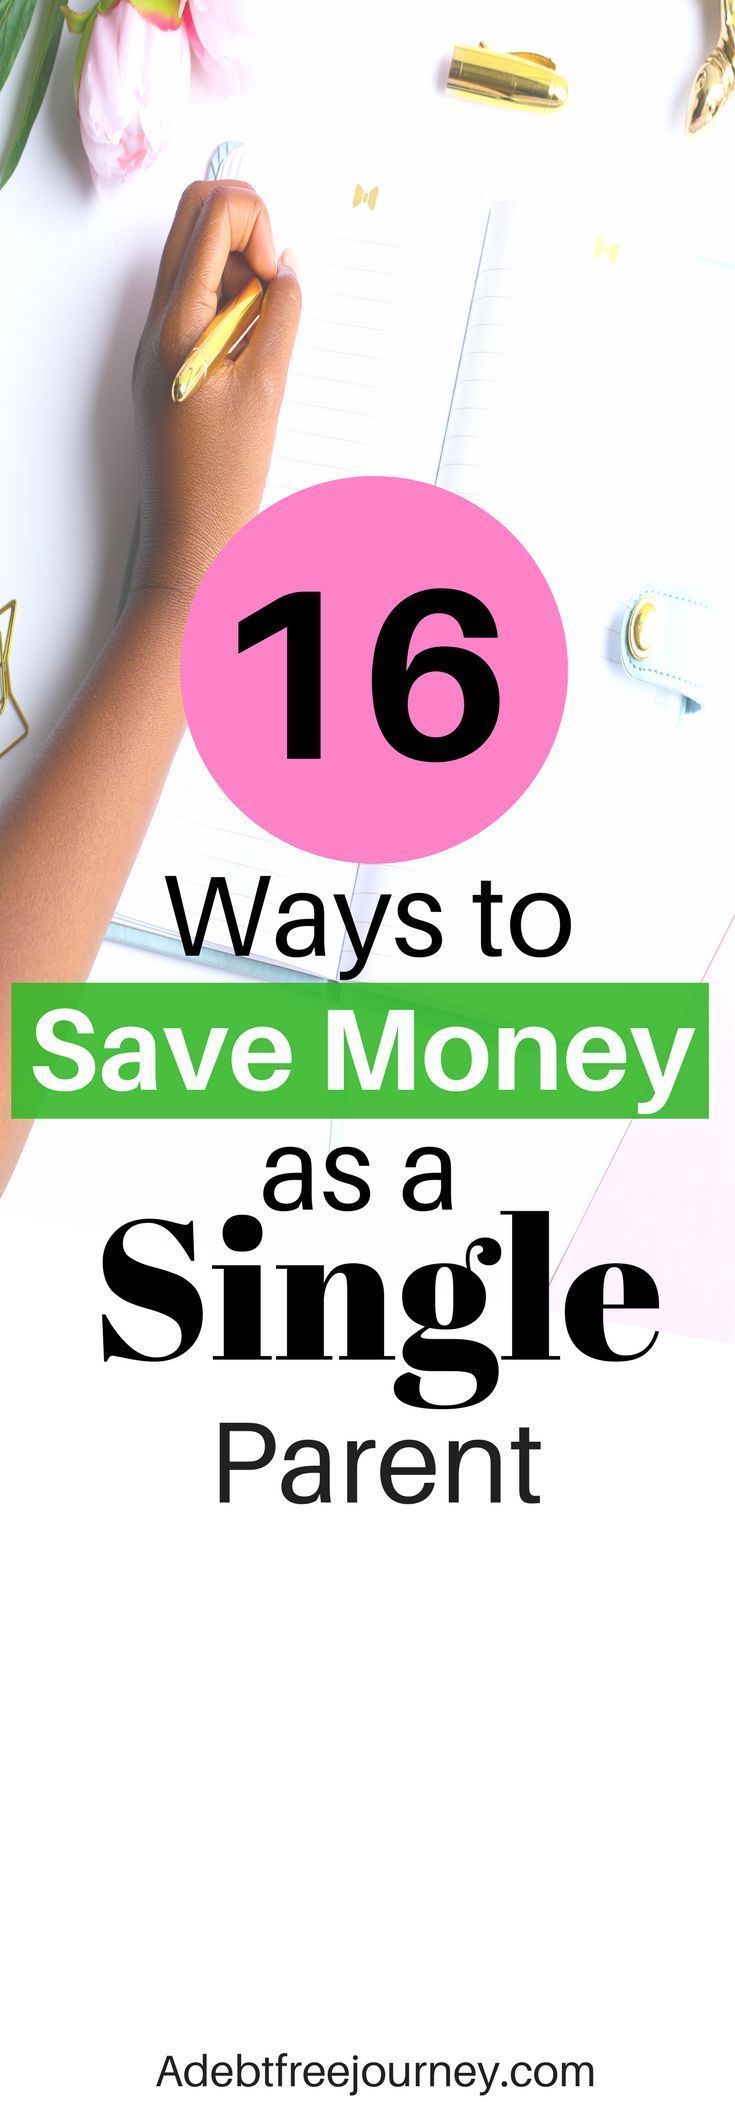 Being a single parent can be tough on your finances. This list of 16 ways to save money as a single parent is great for those looking to get their finances back on track!